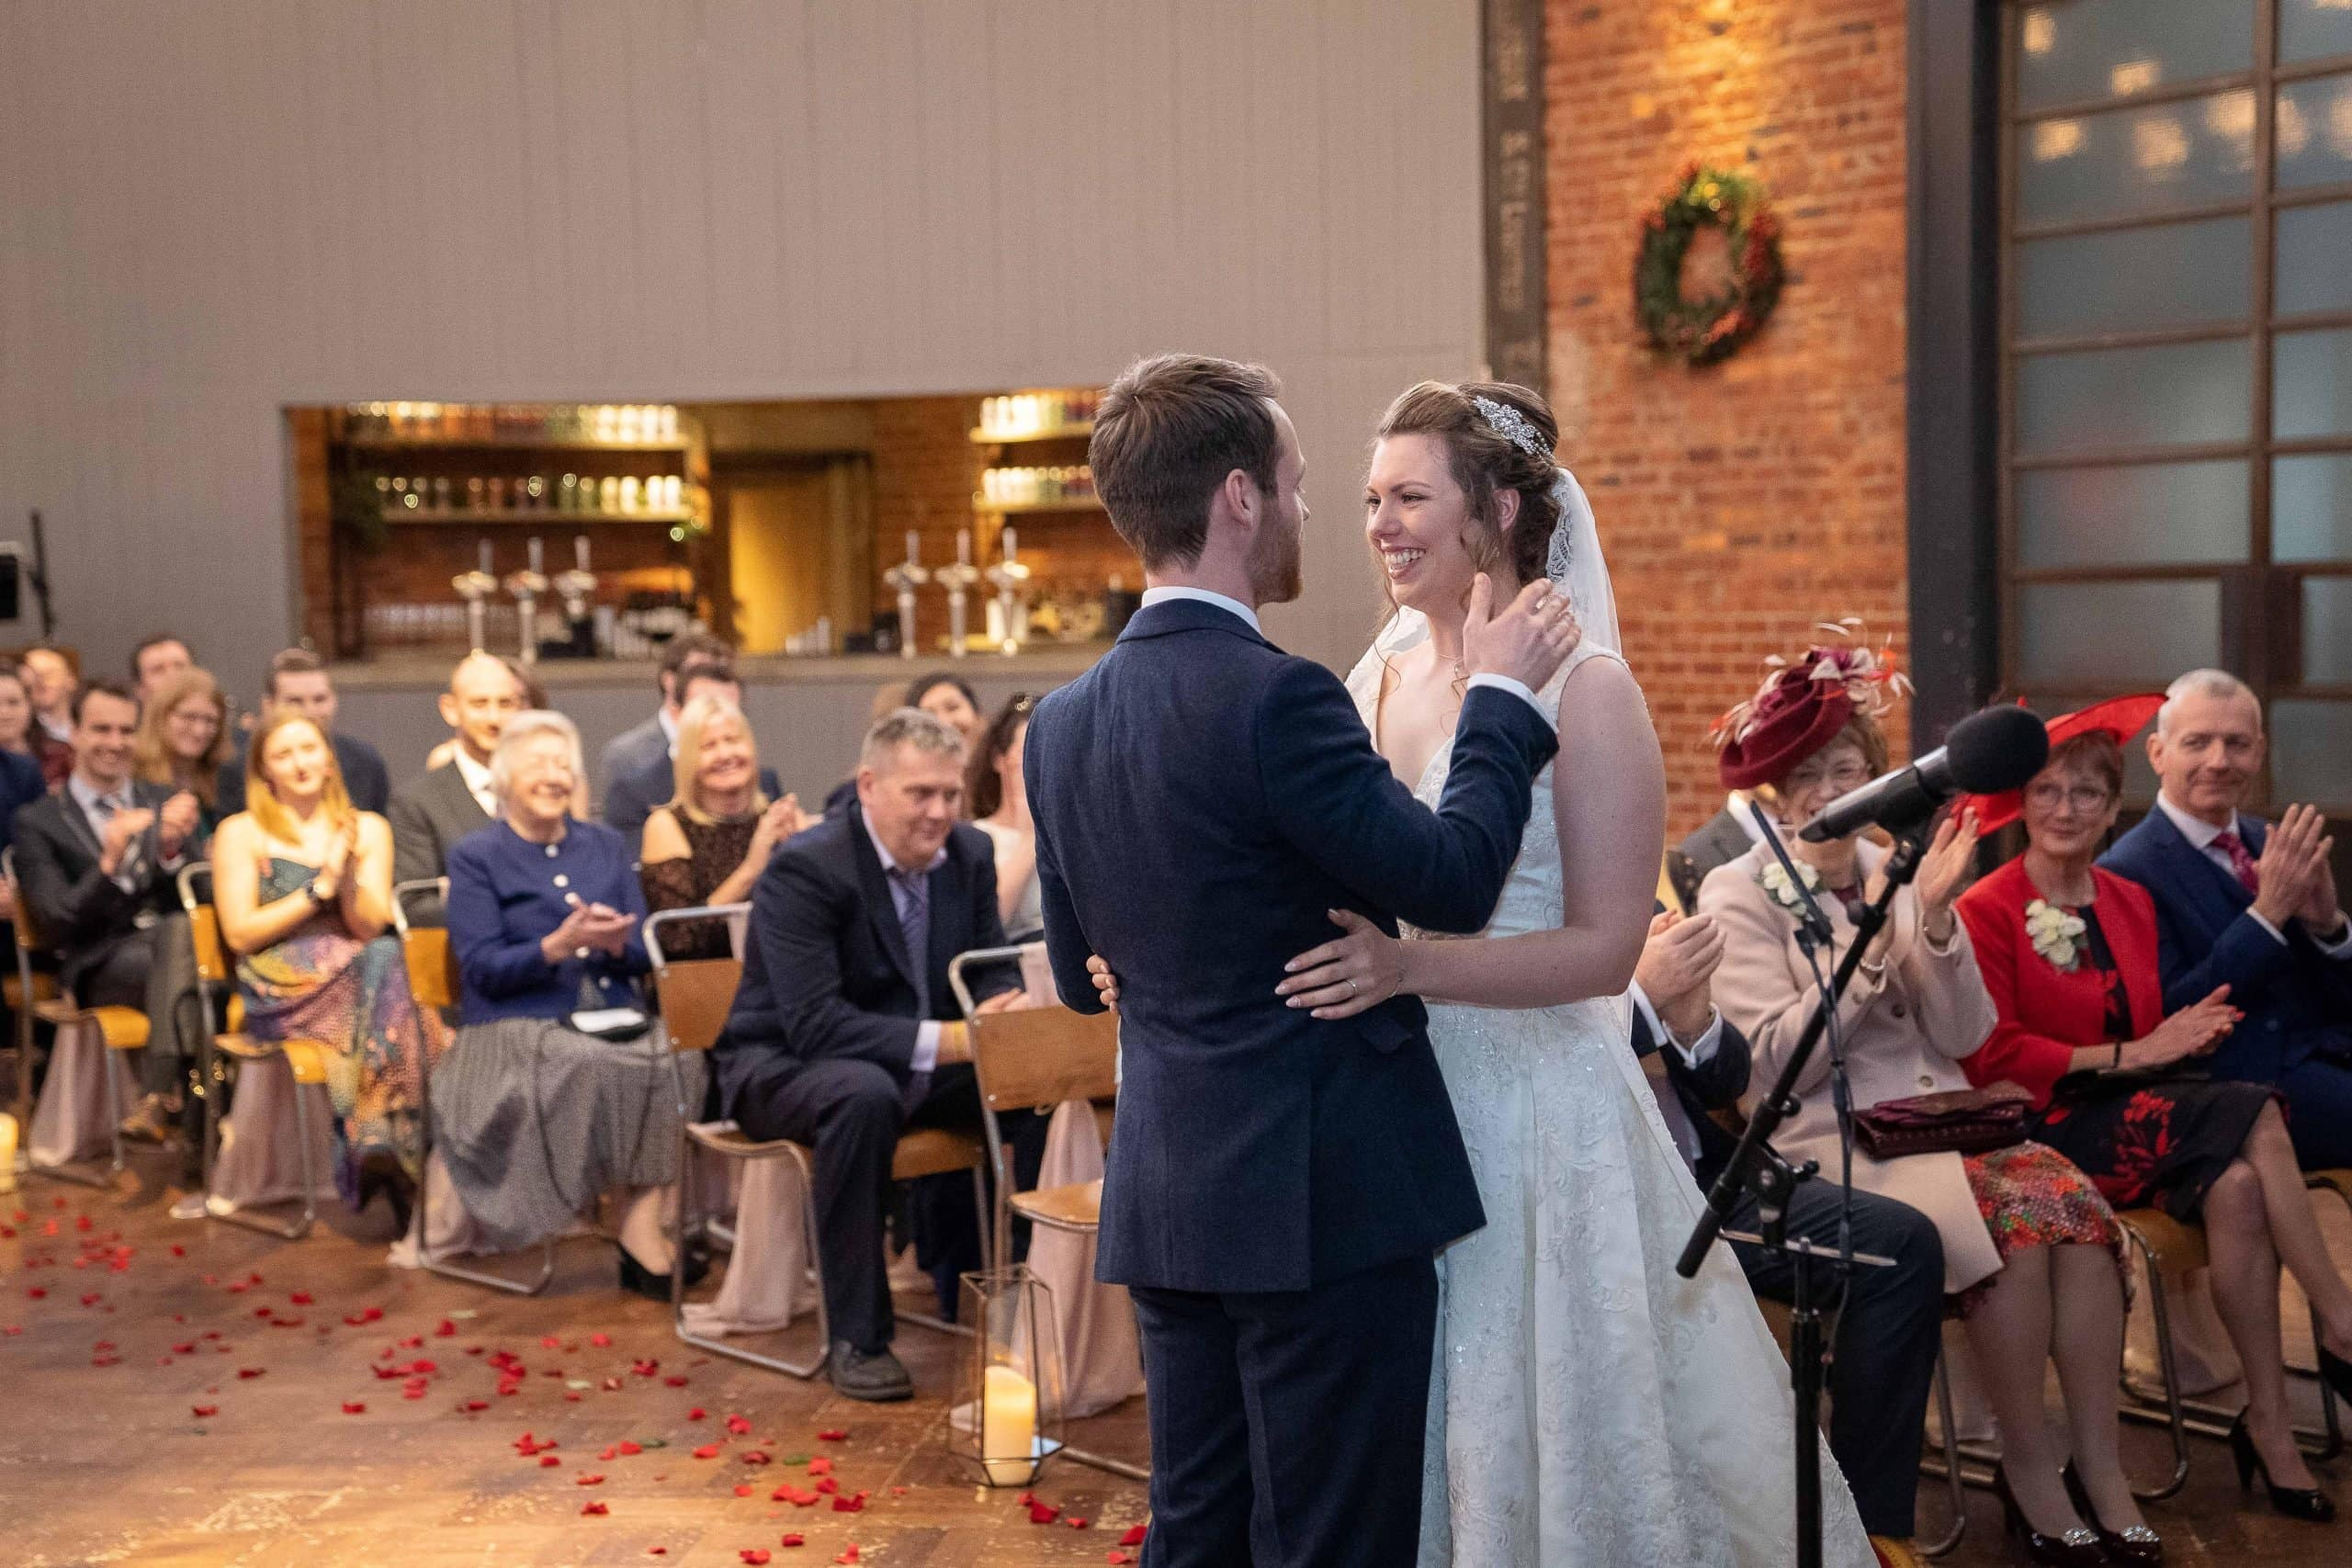 Brdie and groom saying I do at Wylam Brewery